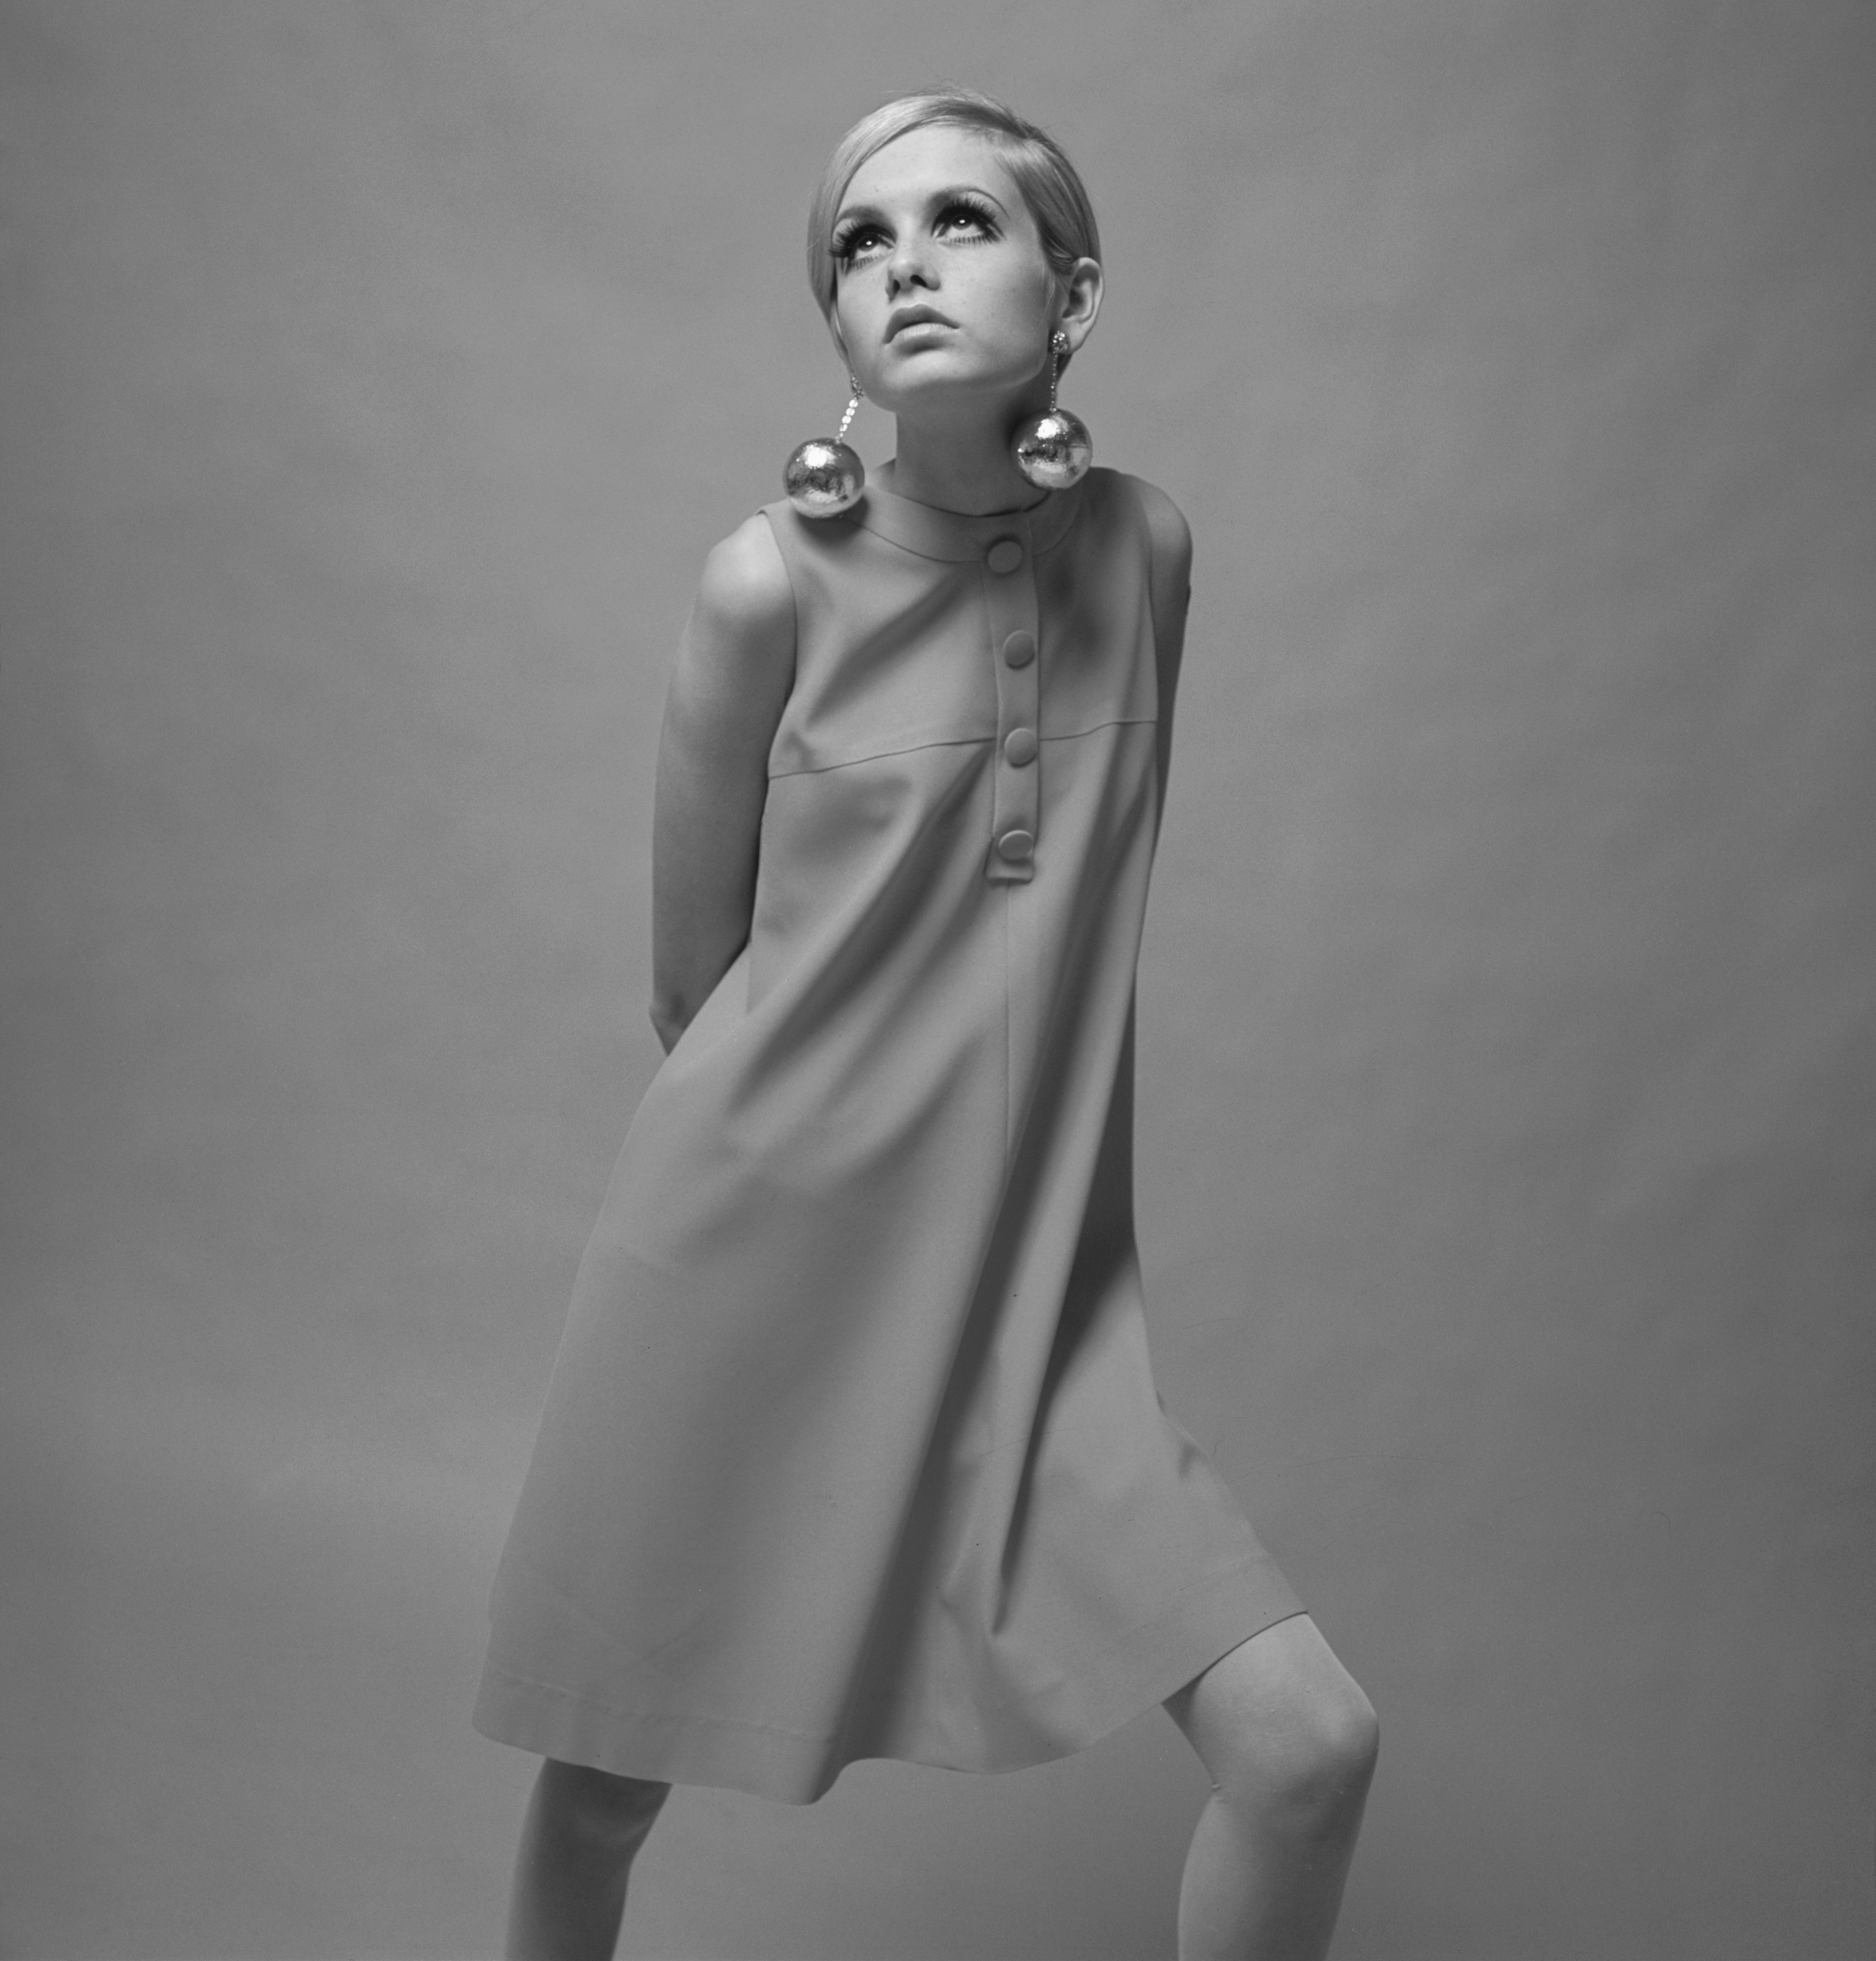 3rd December 1966, British Model Twiggy, (Lesley Hornby) is pictured wearing a pale pink mini dress  (Photo by Popperfoto/Getty Images)